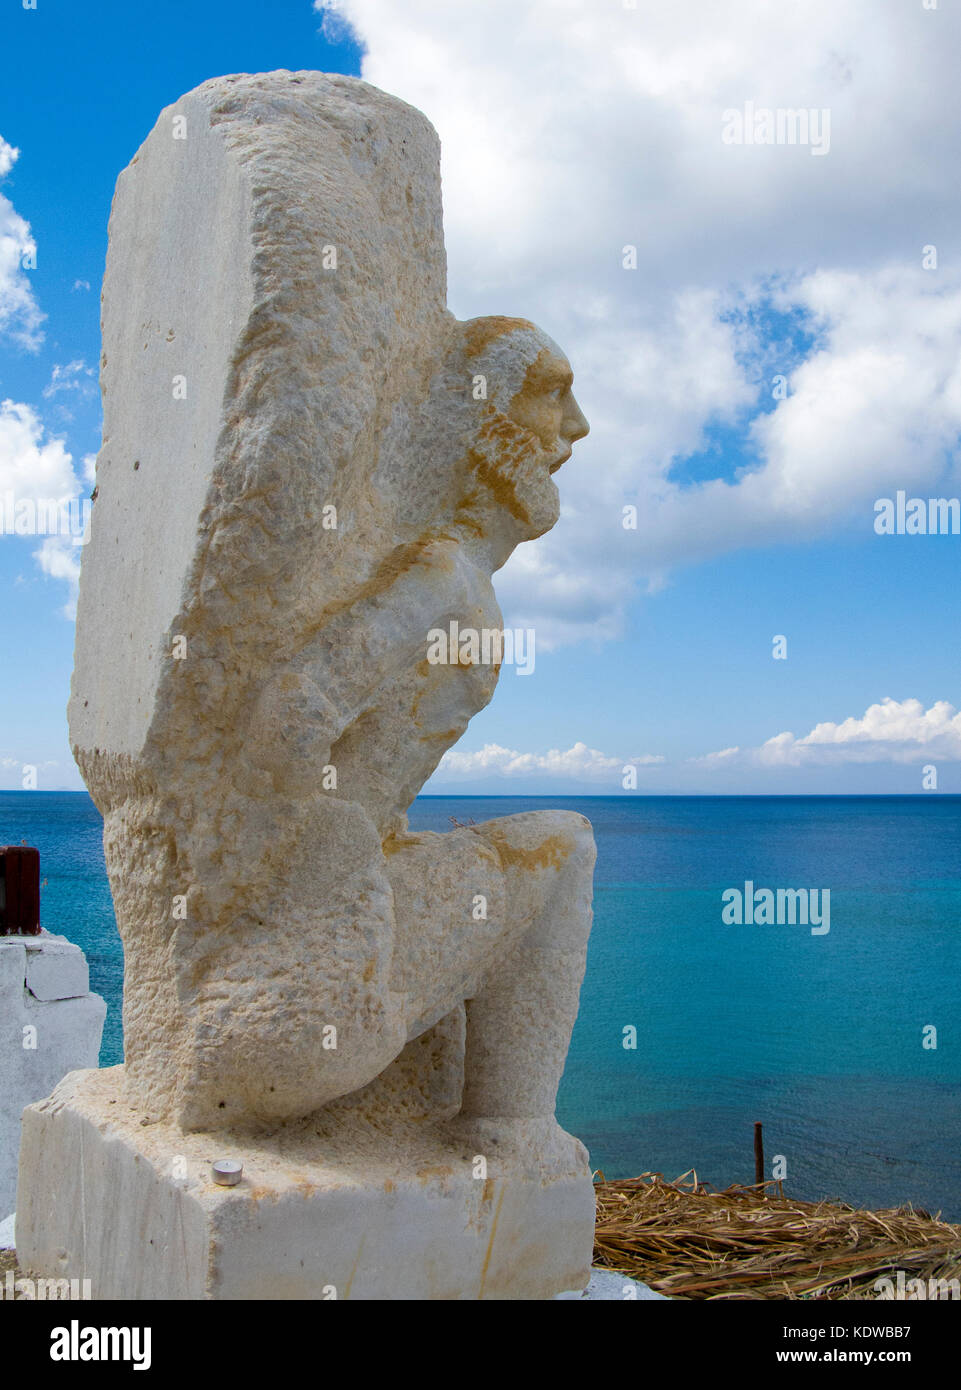 White sculptur at Paradise beach, south of Mykonos, Cyclades, Aegean, Greece, Europe - Stock Image